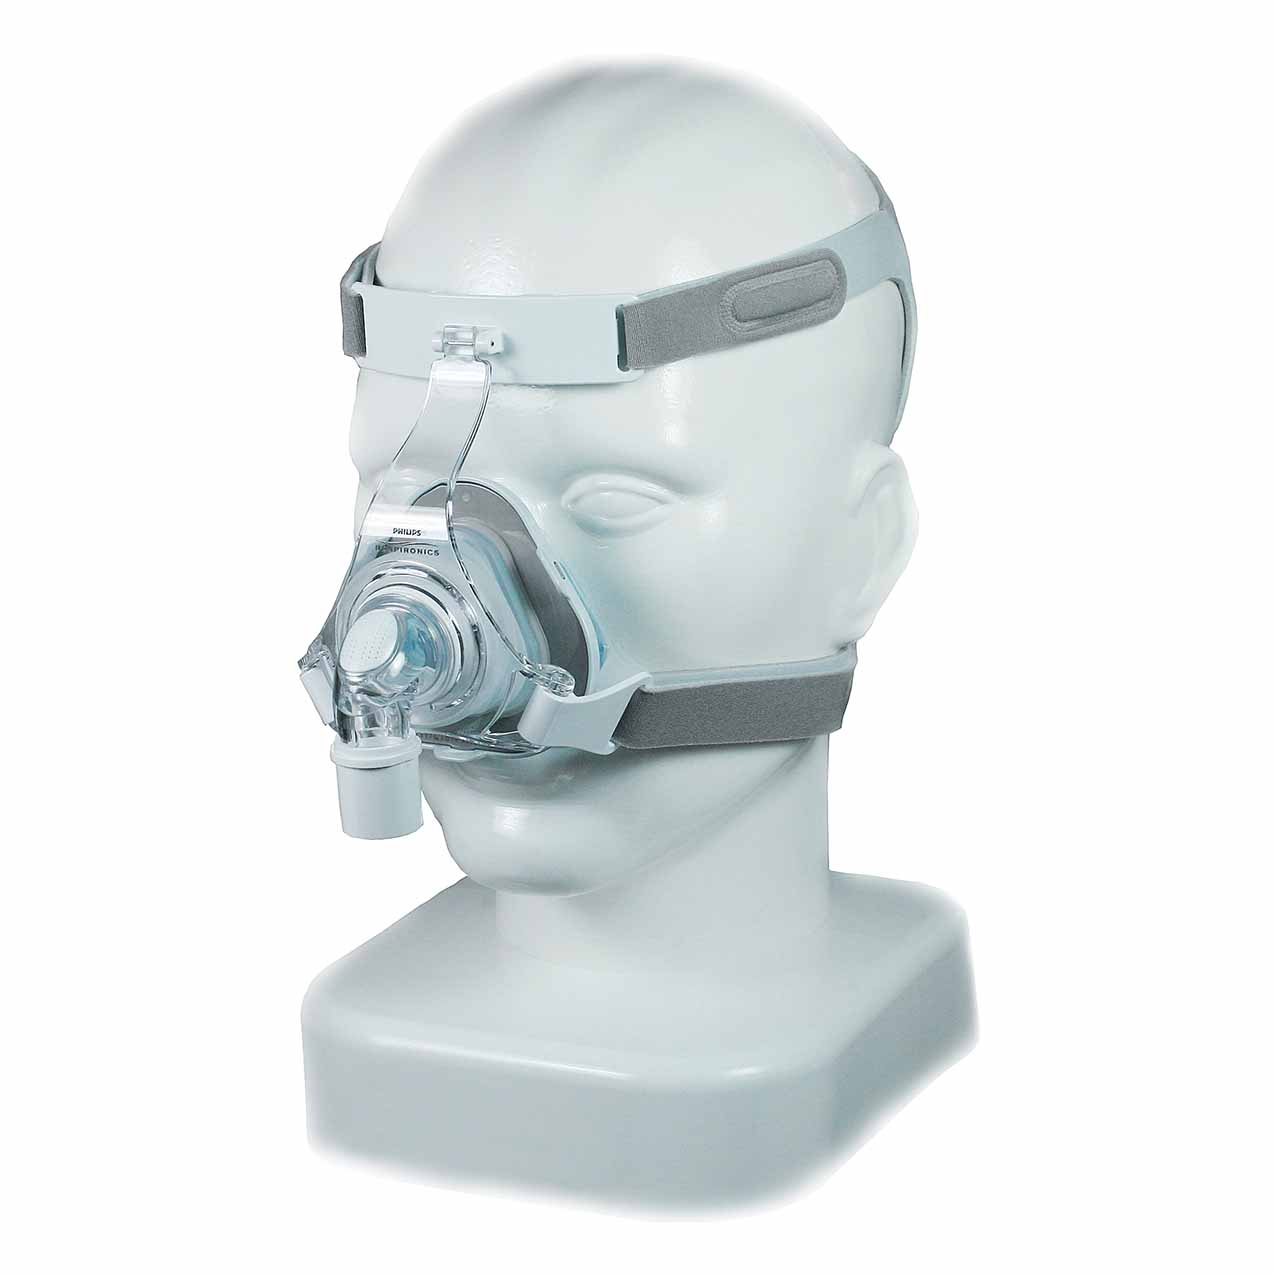 TrueBlue Gel Nasal CPAP Mask with Headgear from Respironics